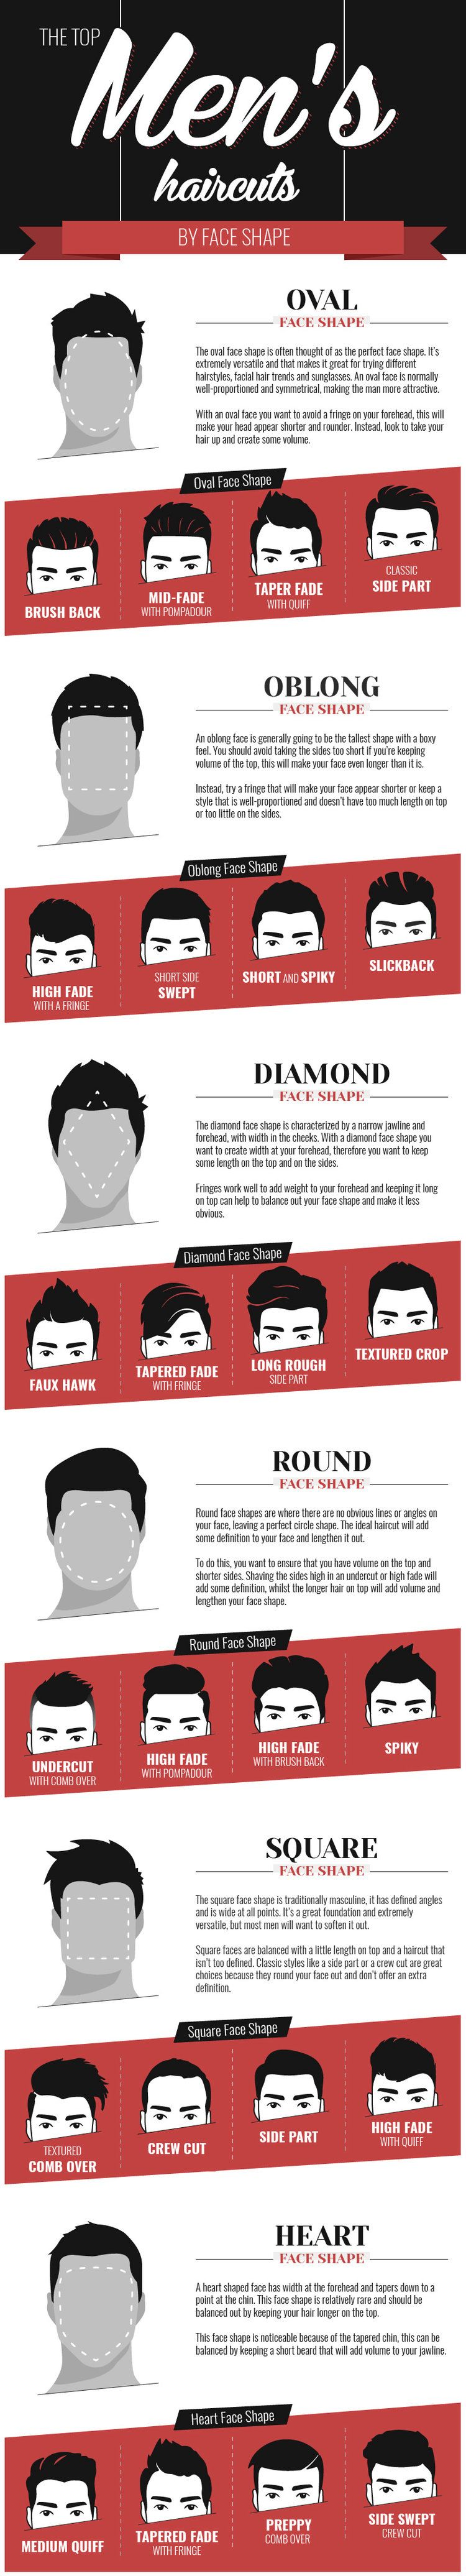 Haircut for men according to face shape top menus haircuts by face shape infographic  face shapes and